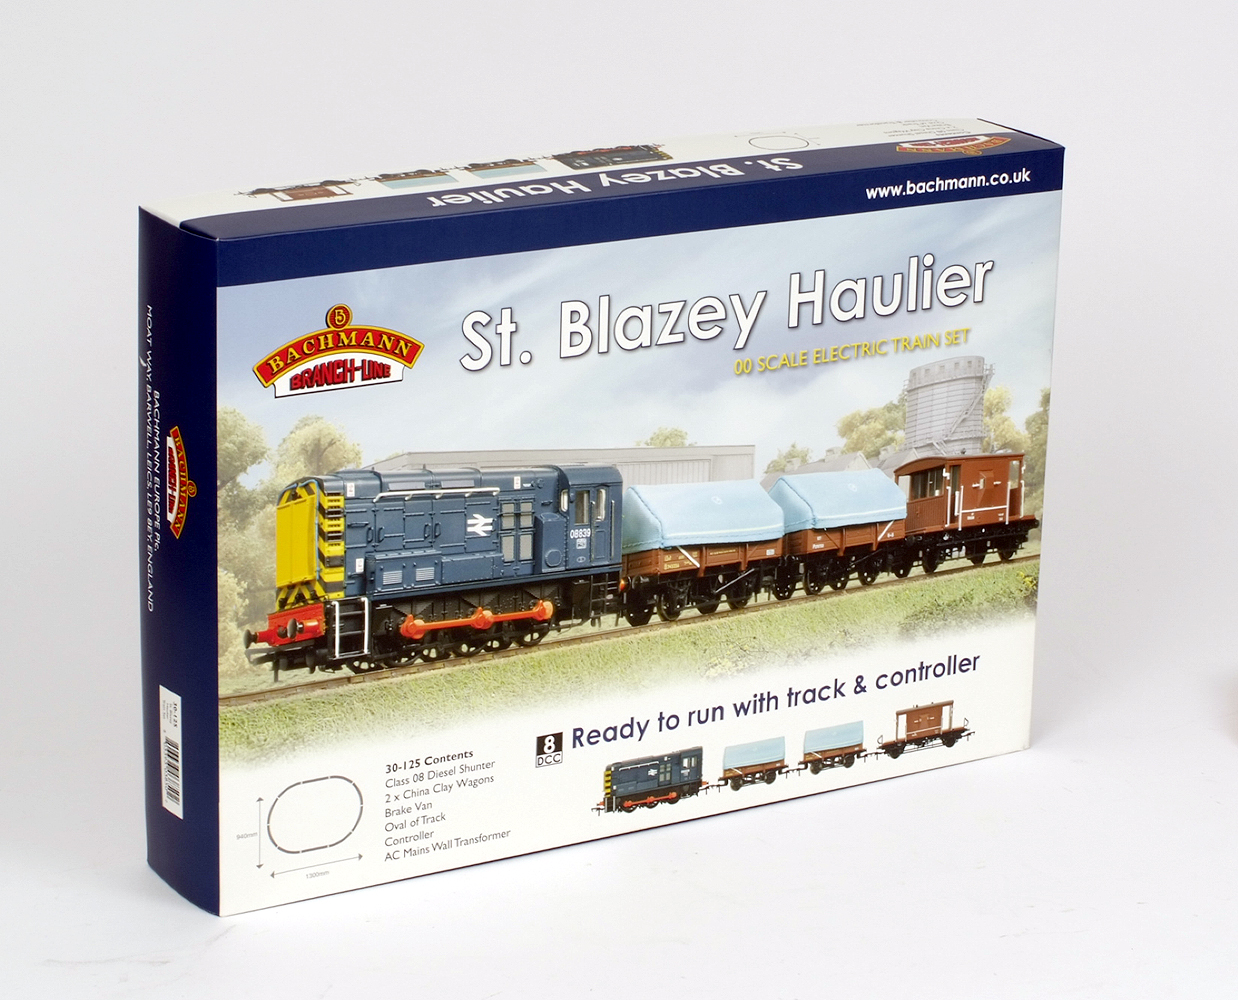 Lot 48 - OO gauge. Bachmann 30-125 St.